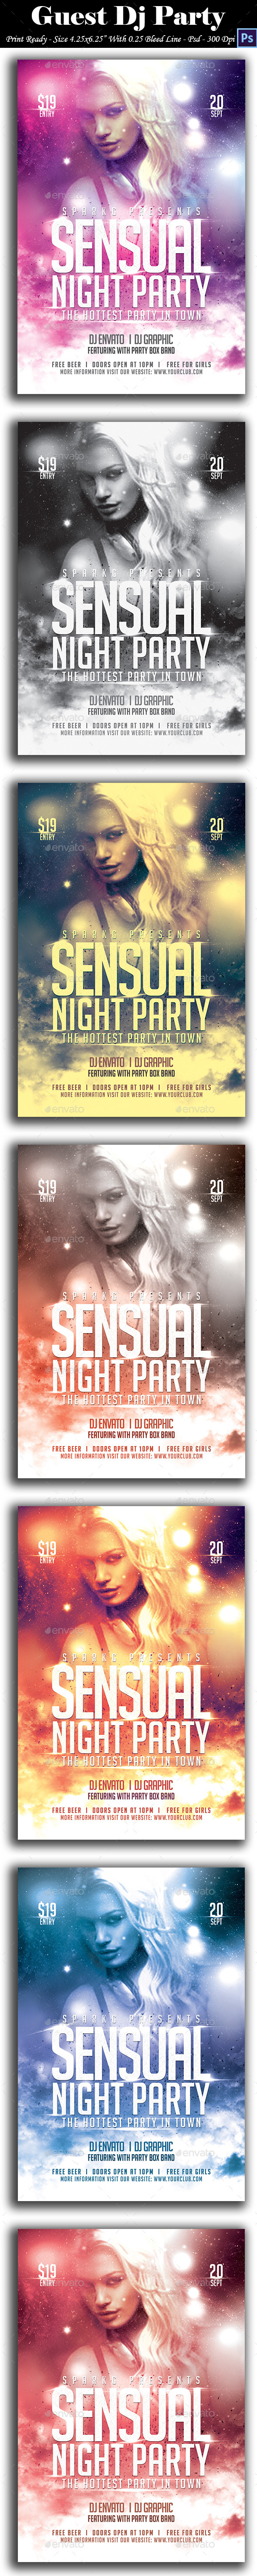 GraphicRiver Sensual Night Party Flyer 8906533